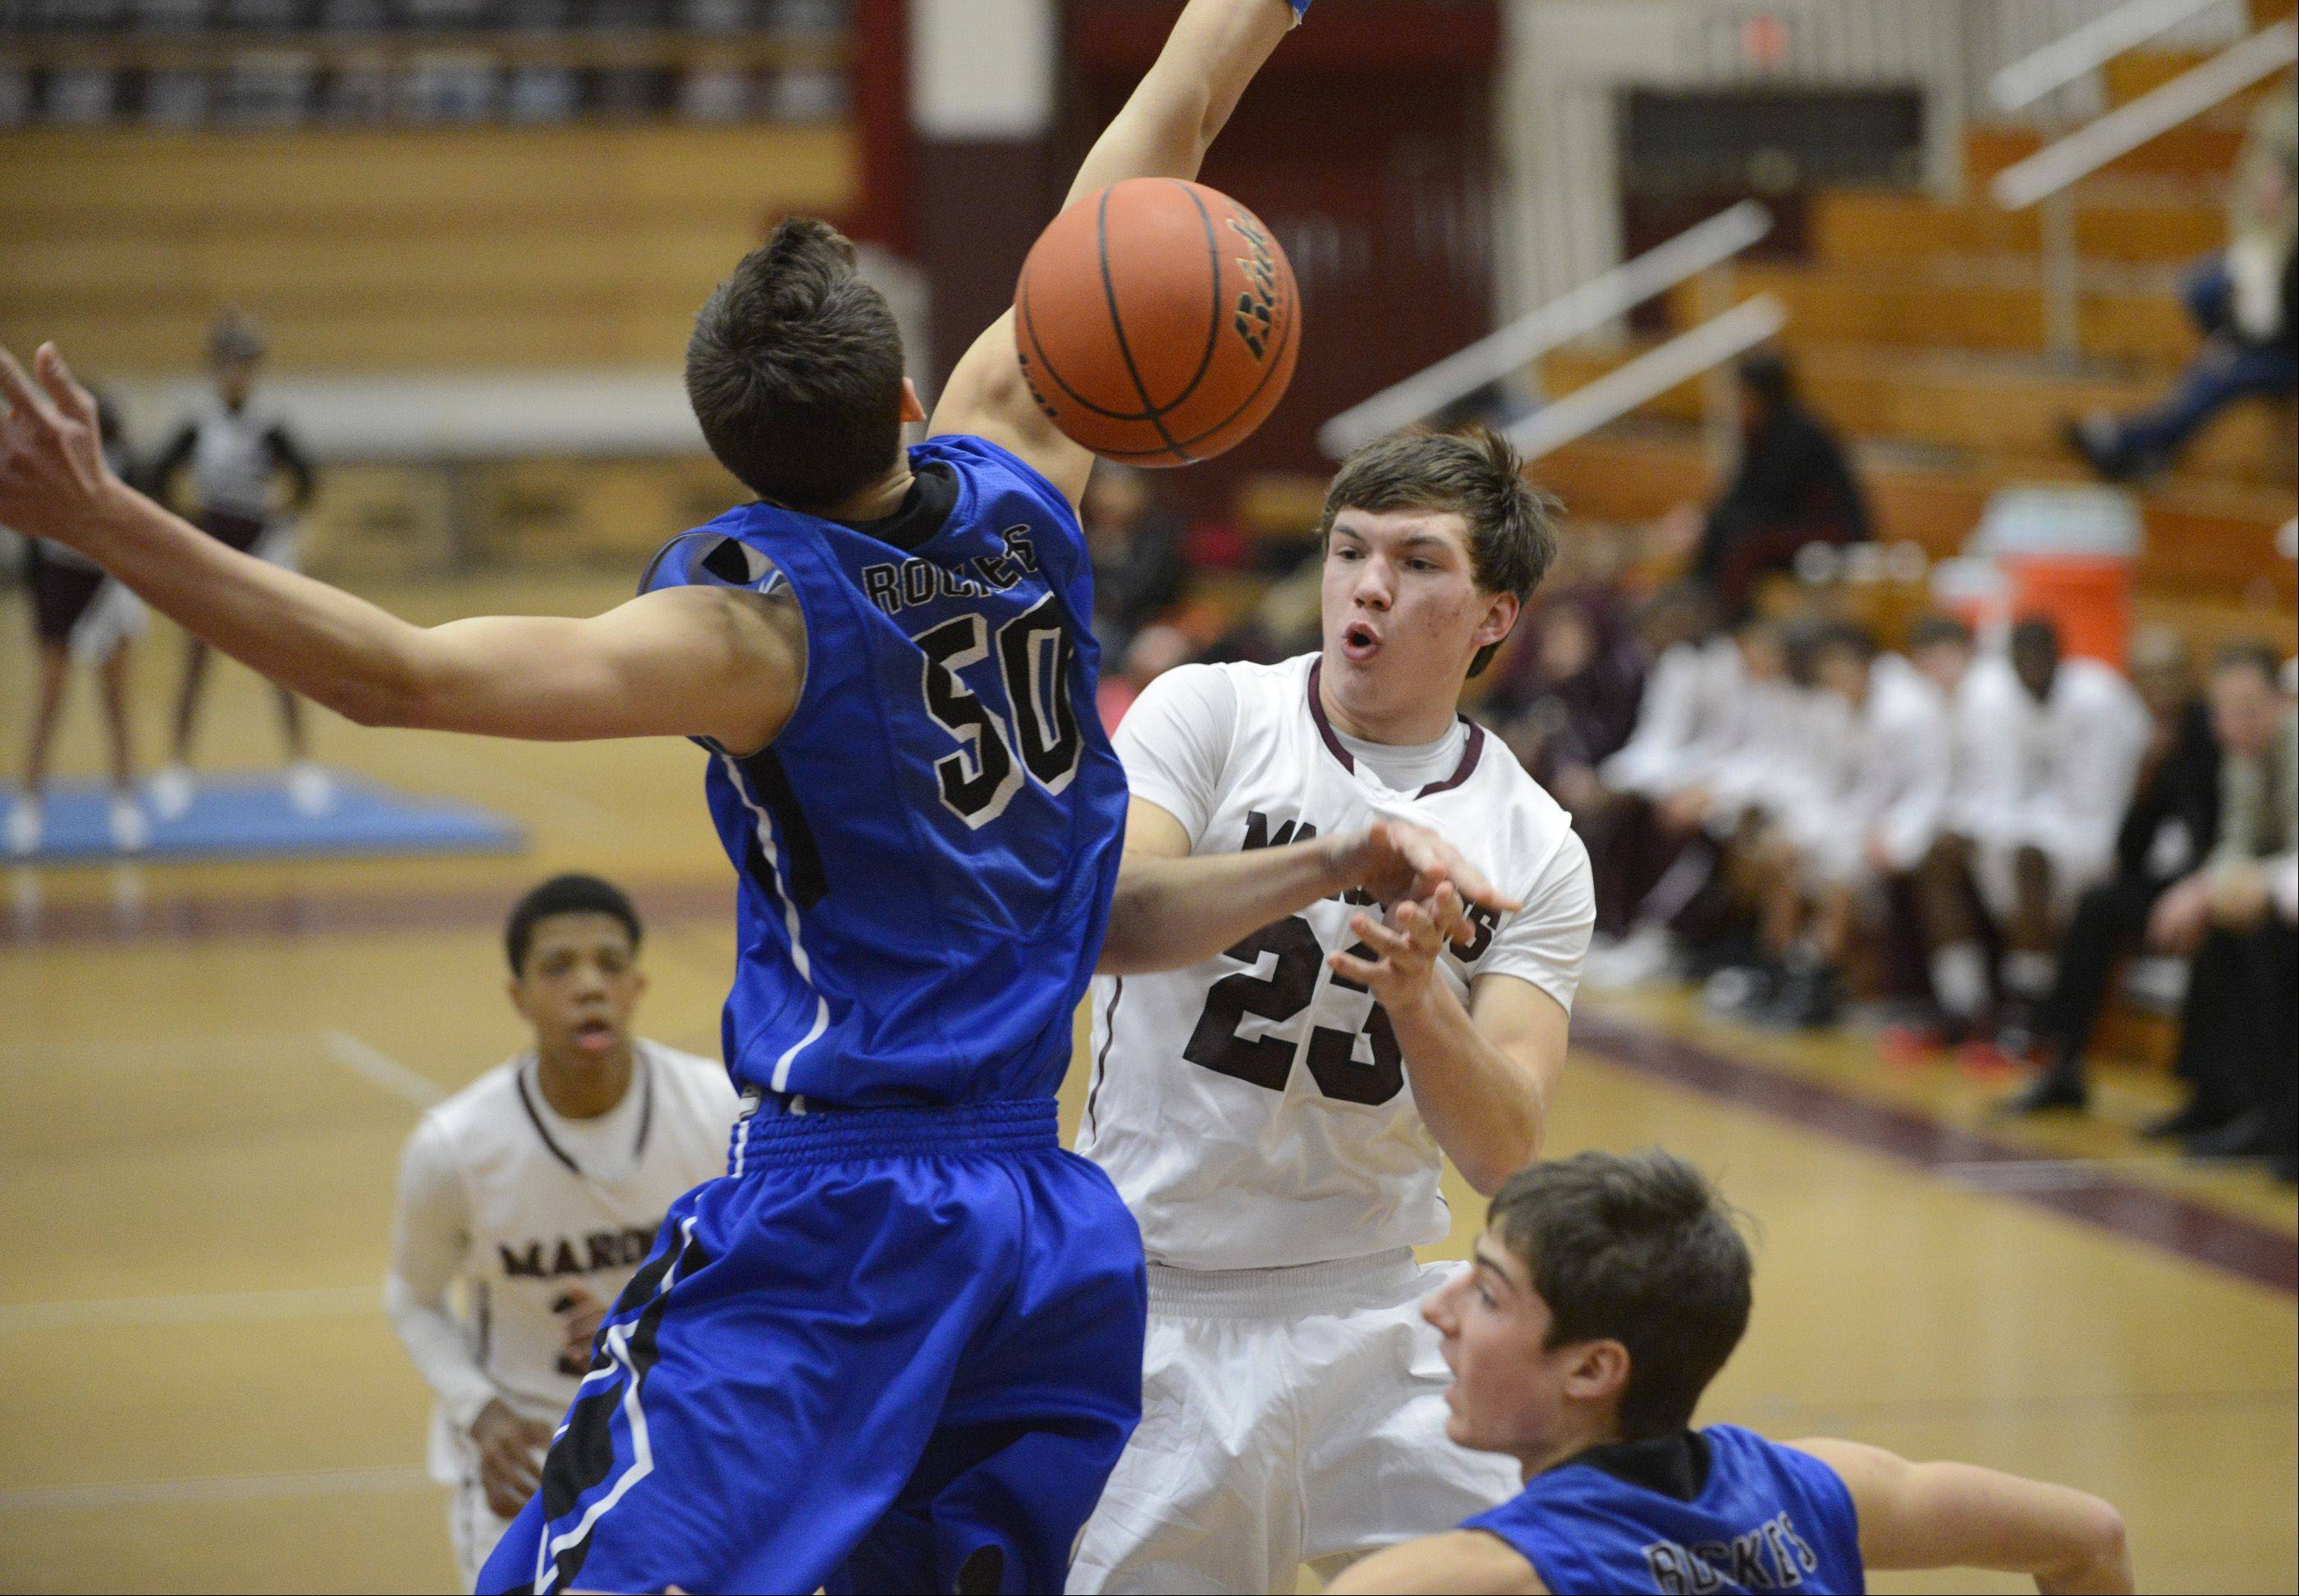 Burlington Central upends Elgin